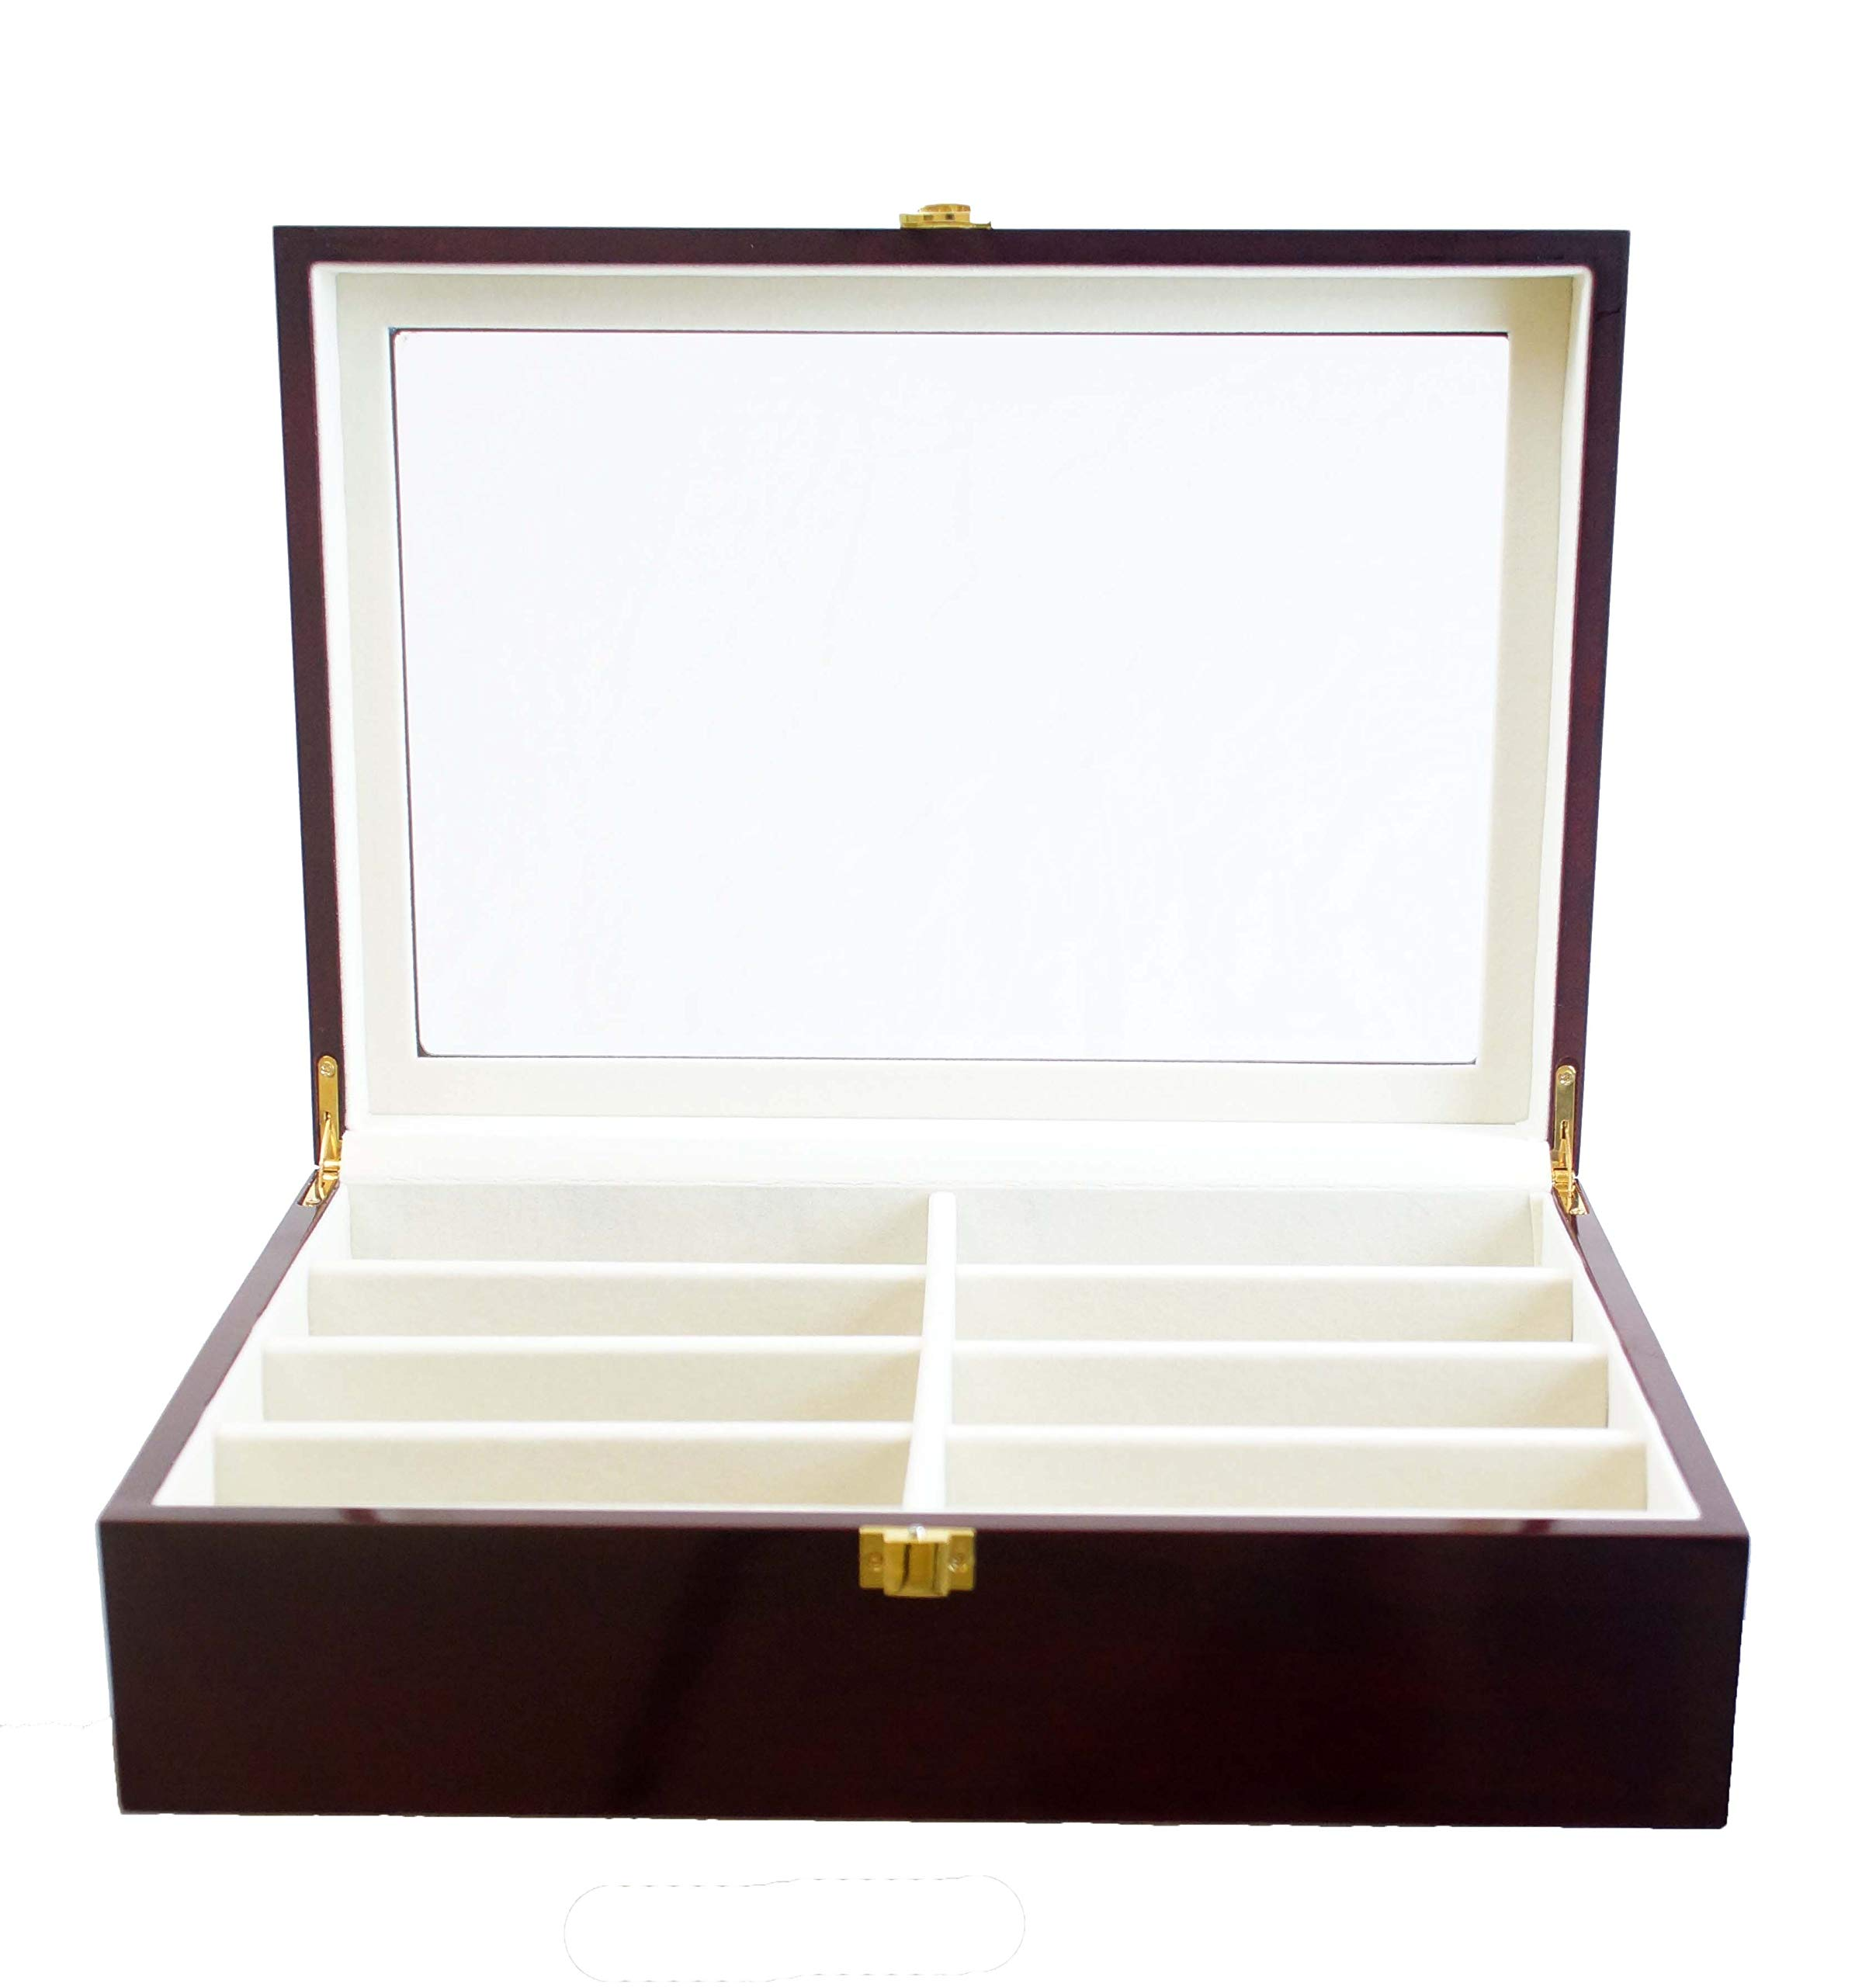 Luxury Eight-Compartment Jewelry Organizer and Watch Box is Ideal for Anyone with Multiple Pairs of Specs. This Sunglasses Case Protects Your Eyewear and is a Convenient Dresser Organizer